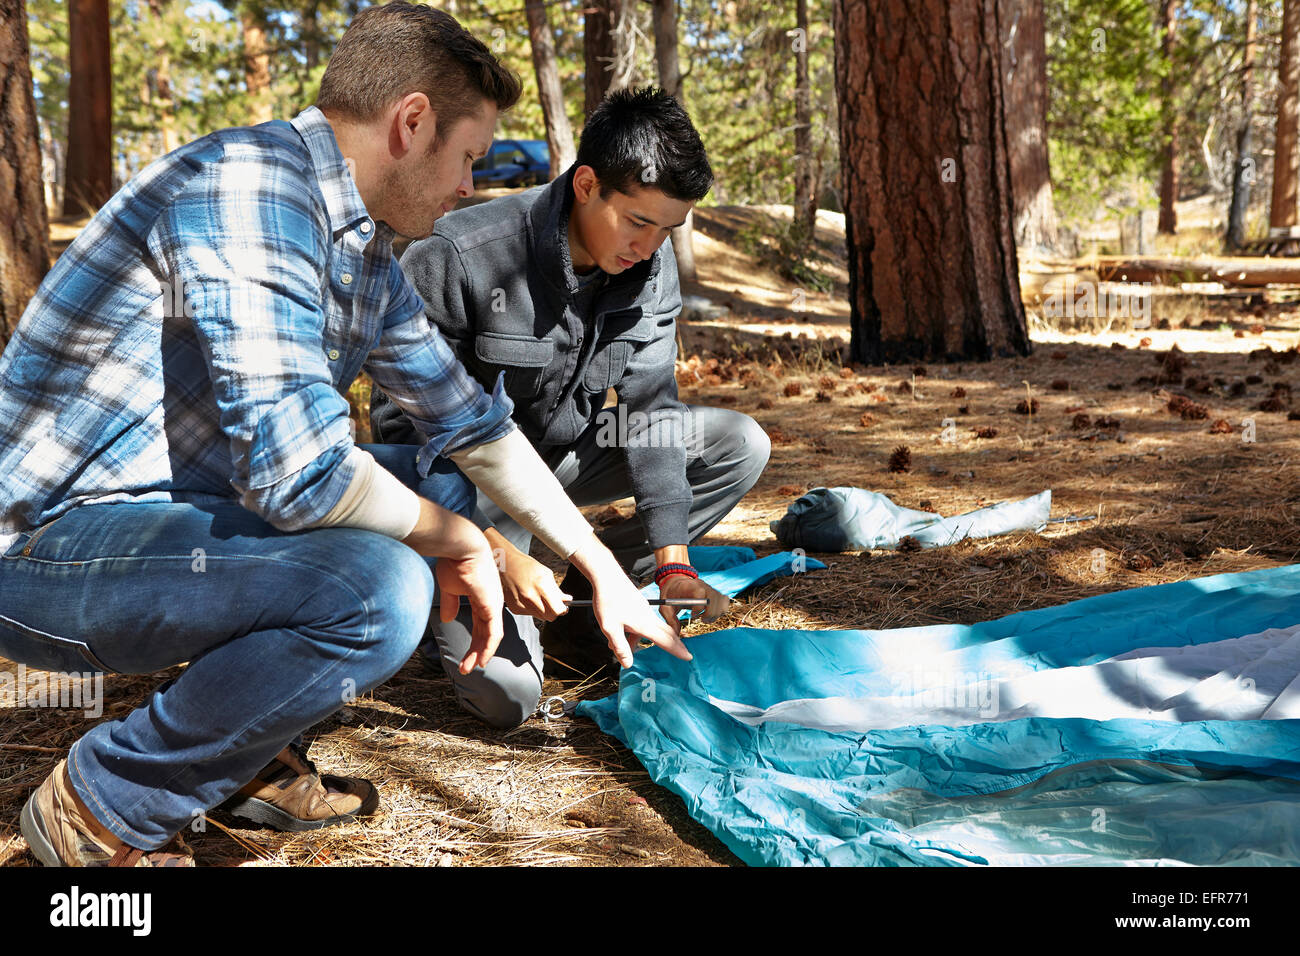 Two young men preparing to camp in forest, Los Angeles, California, USA Stock Photo